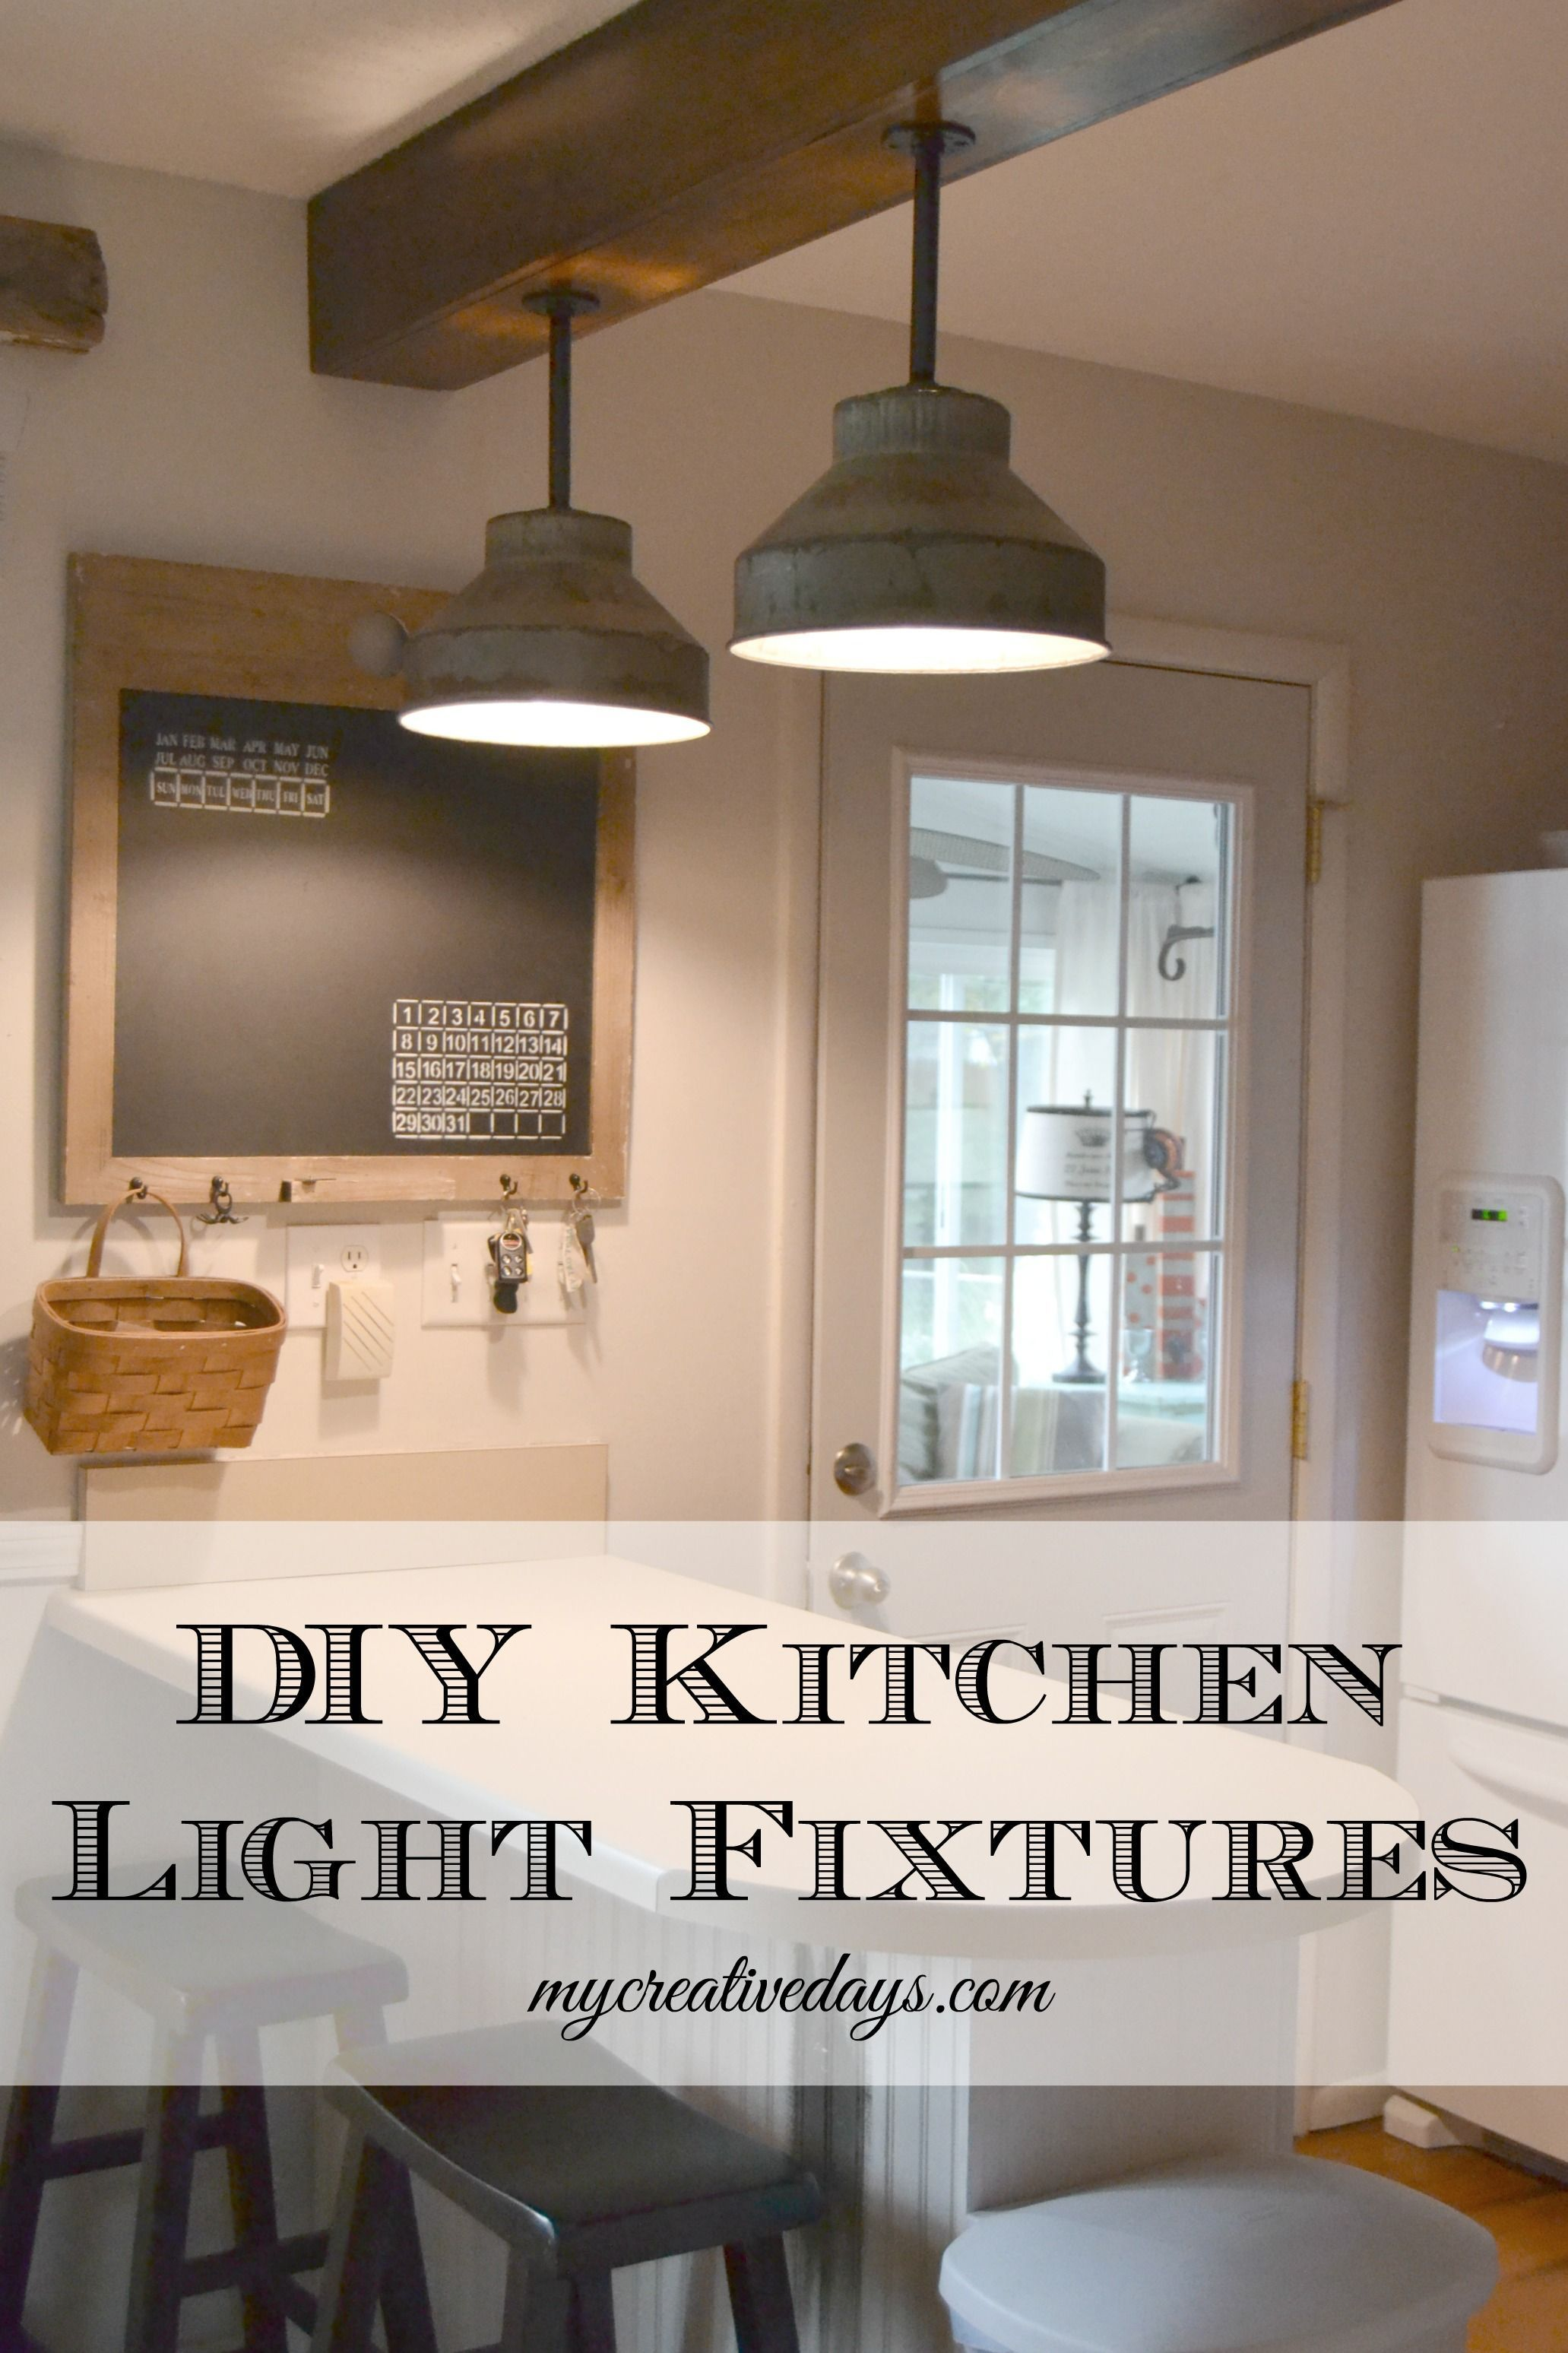 Do you need some lighting in your kitchen check out my diy kitchen light fixtures part 2